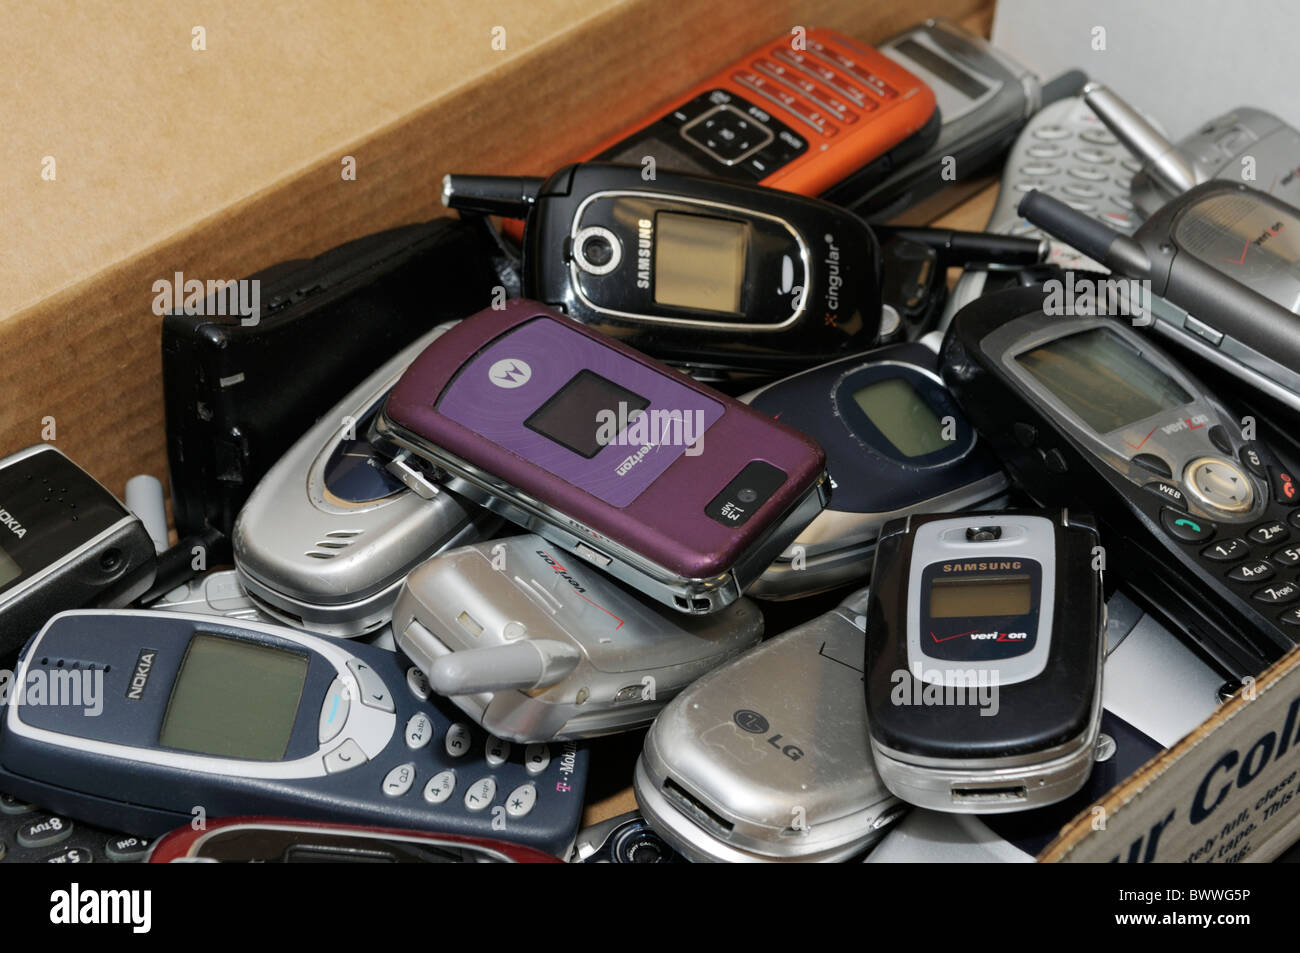 Used cell phones collected to be shipped for recycling - Stock Image